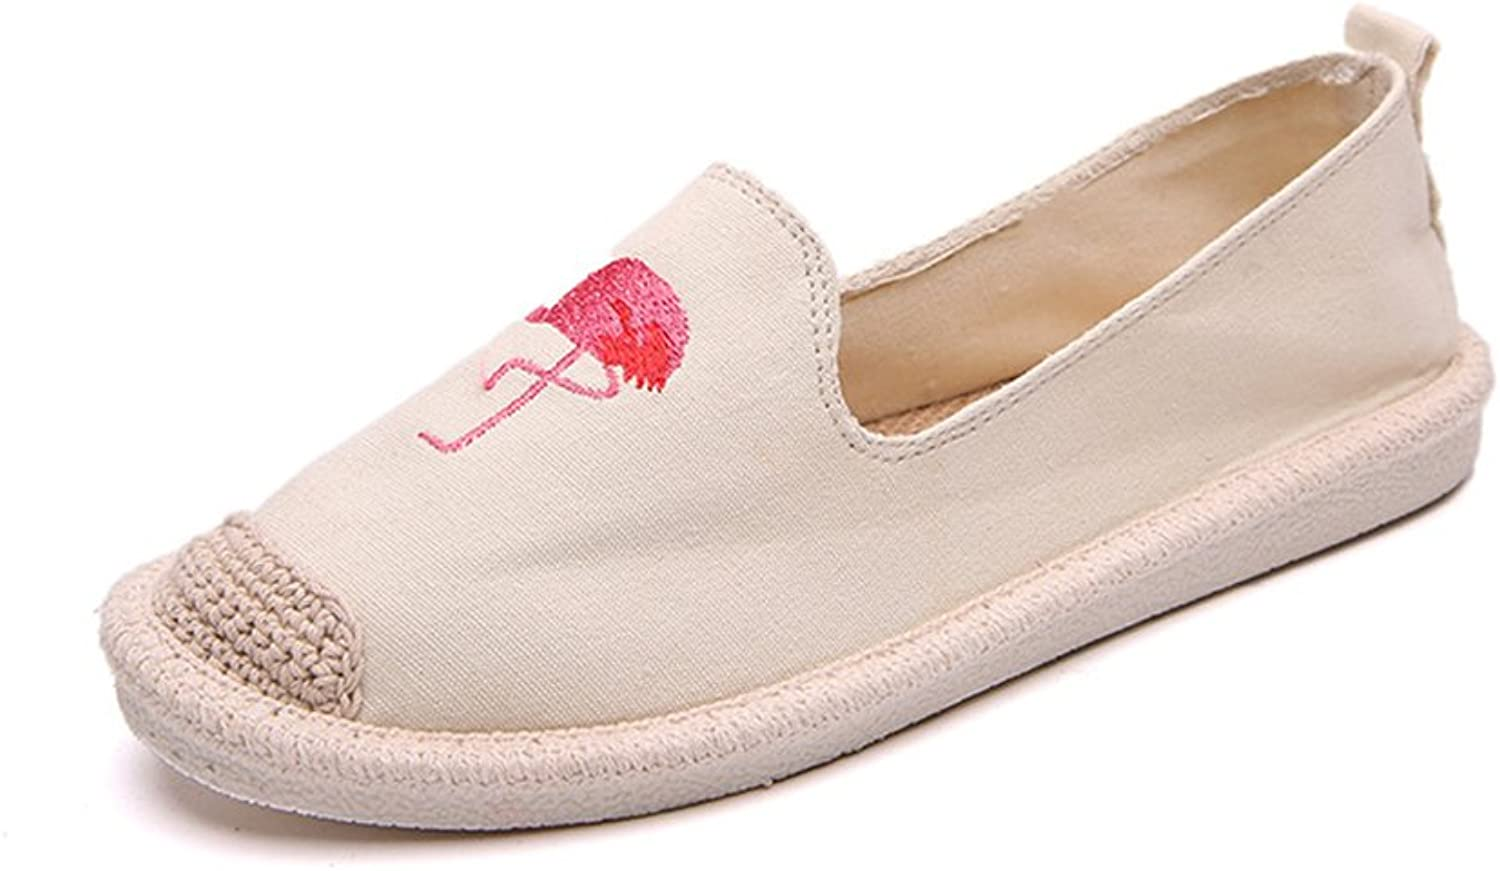 SUNNY Store Women's Loafers Classic Casual Canvas Slip On Fashion shoes Sneakers Flats